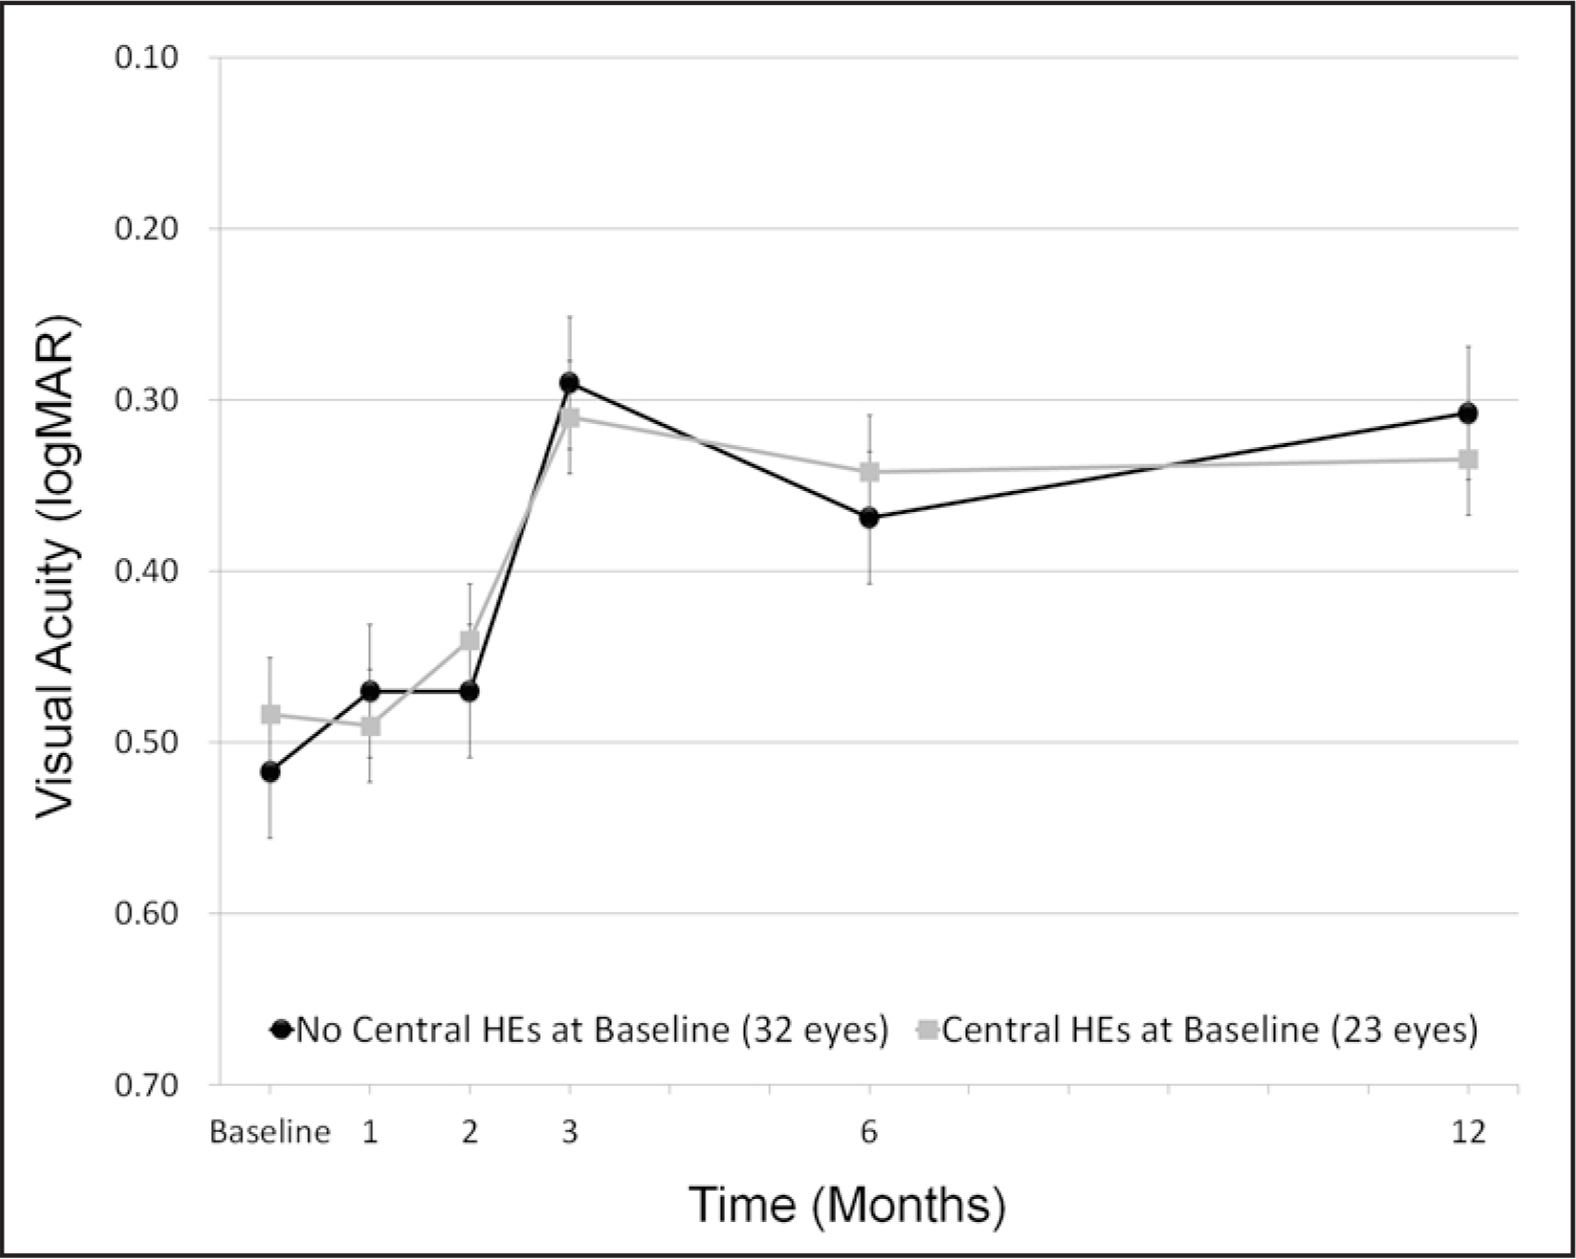 The mean visual acuity change from baseline by the presence or absence of outer nuclear layer hard exudates (HEs) in the central 1-mm ETDRS subfield after intravitreal ranibizumab treatment. Lines corresponds to best-corrected visual acuity in eyes without HEs (black) and in eyes with HEs (gray) in central subfield at baseline. Bars represent 95% confidence intervals.